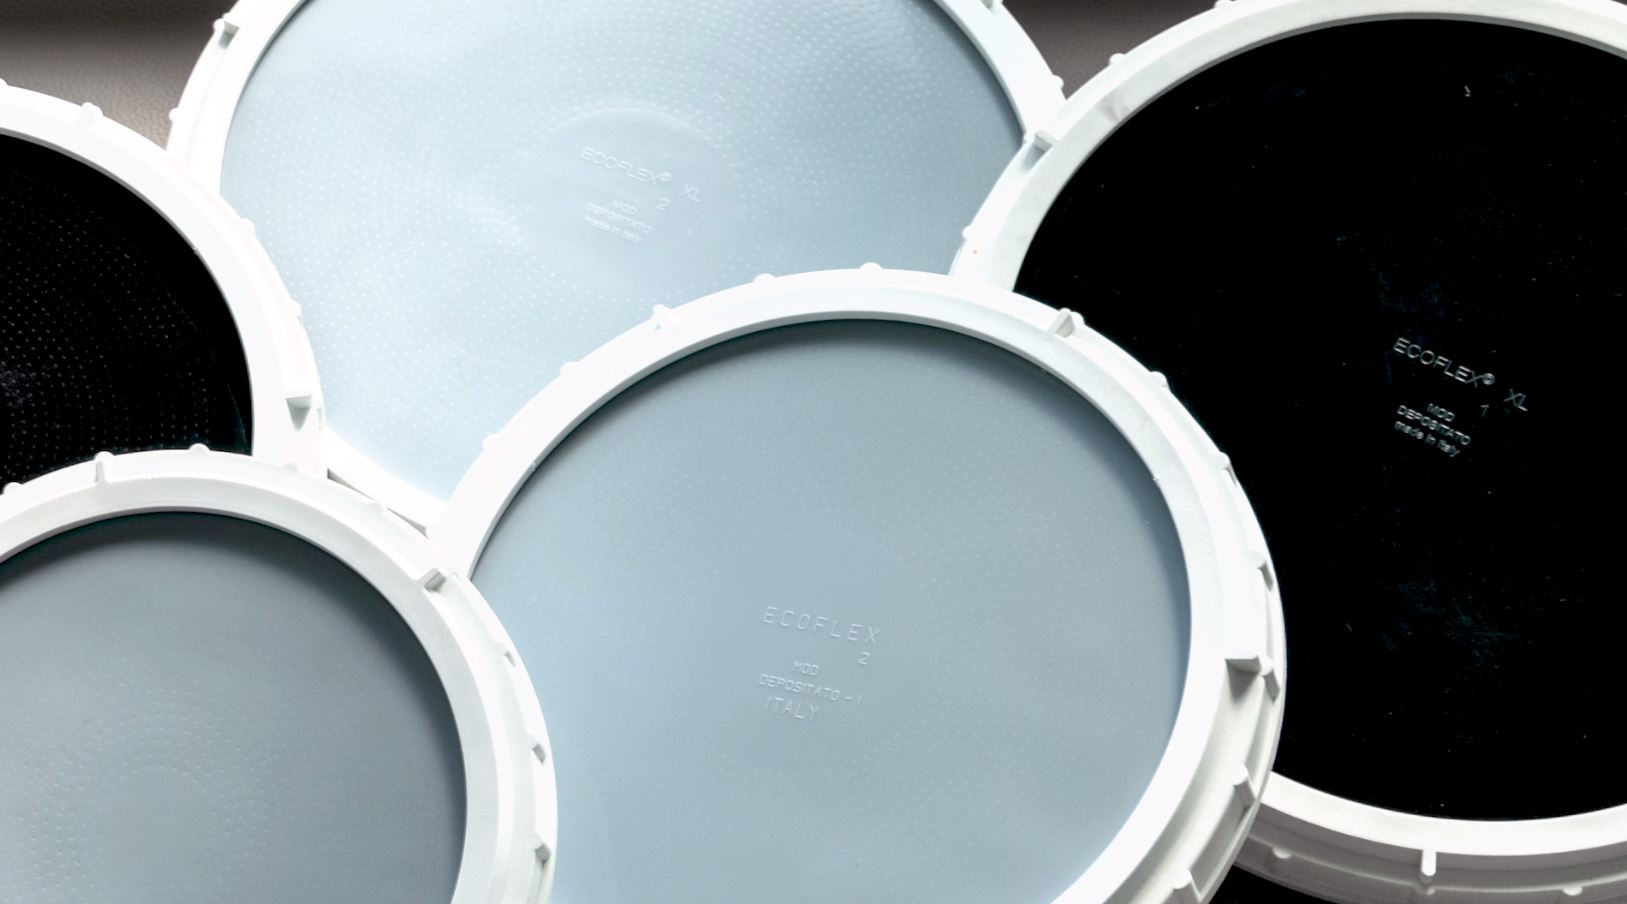 All Ecoflex diffuser are available in the model Hogh efficciency, extra smart and extra large